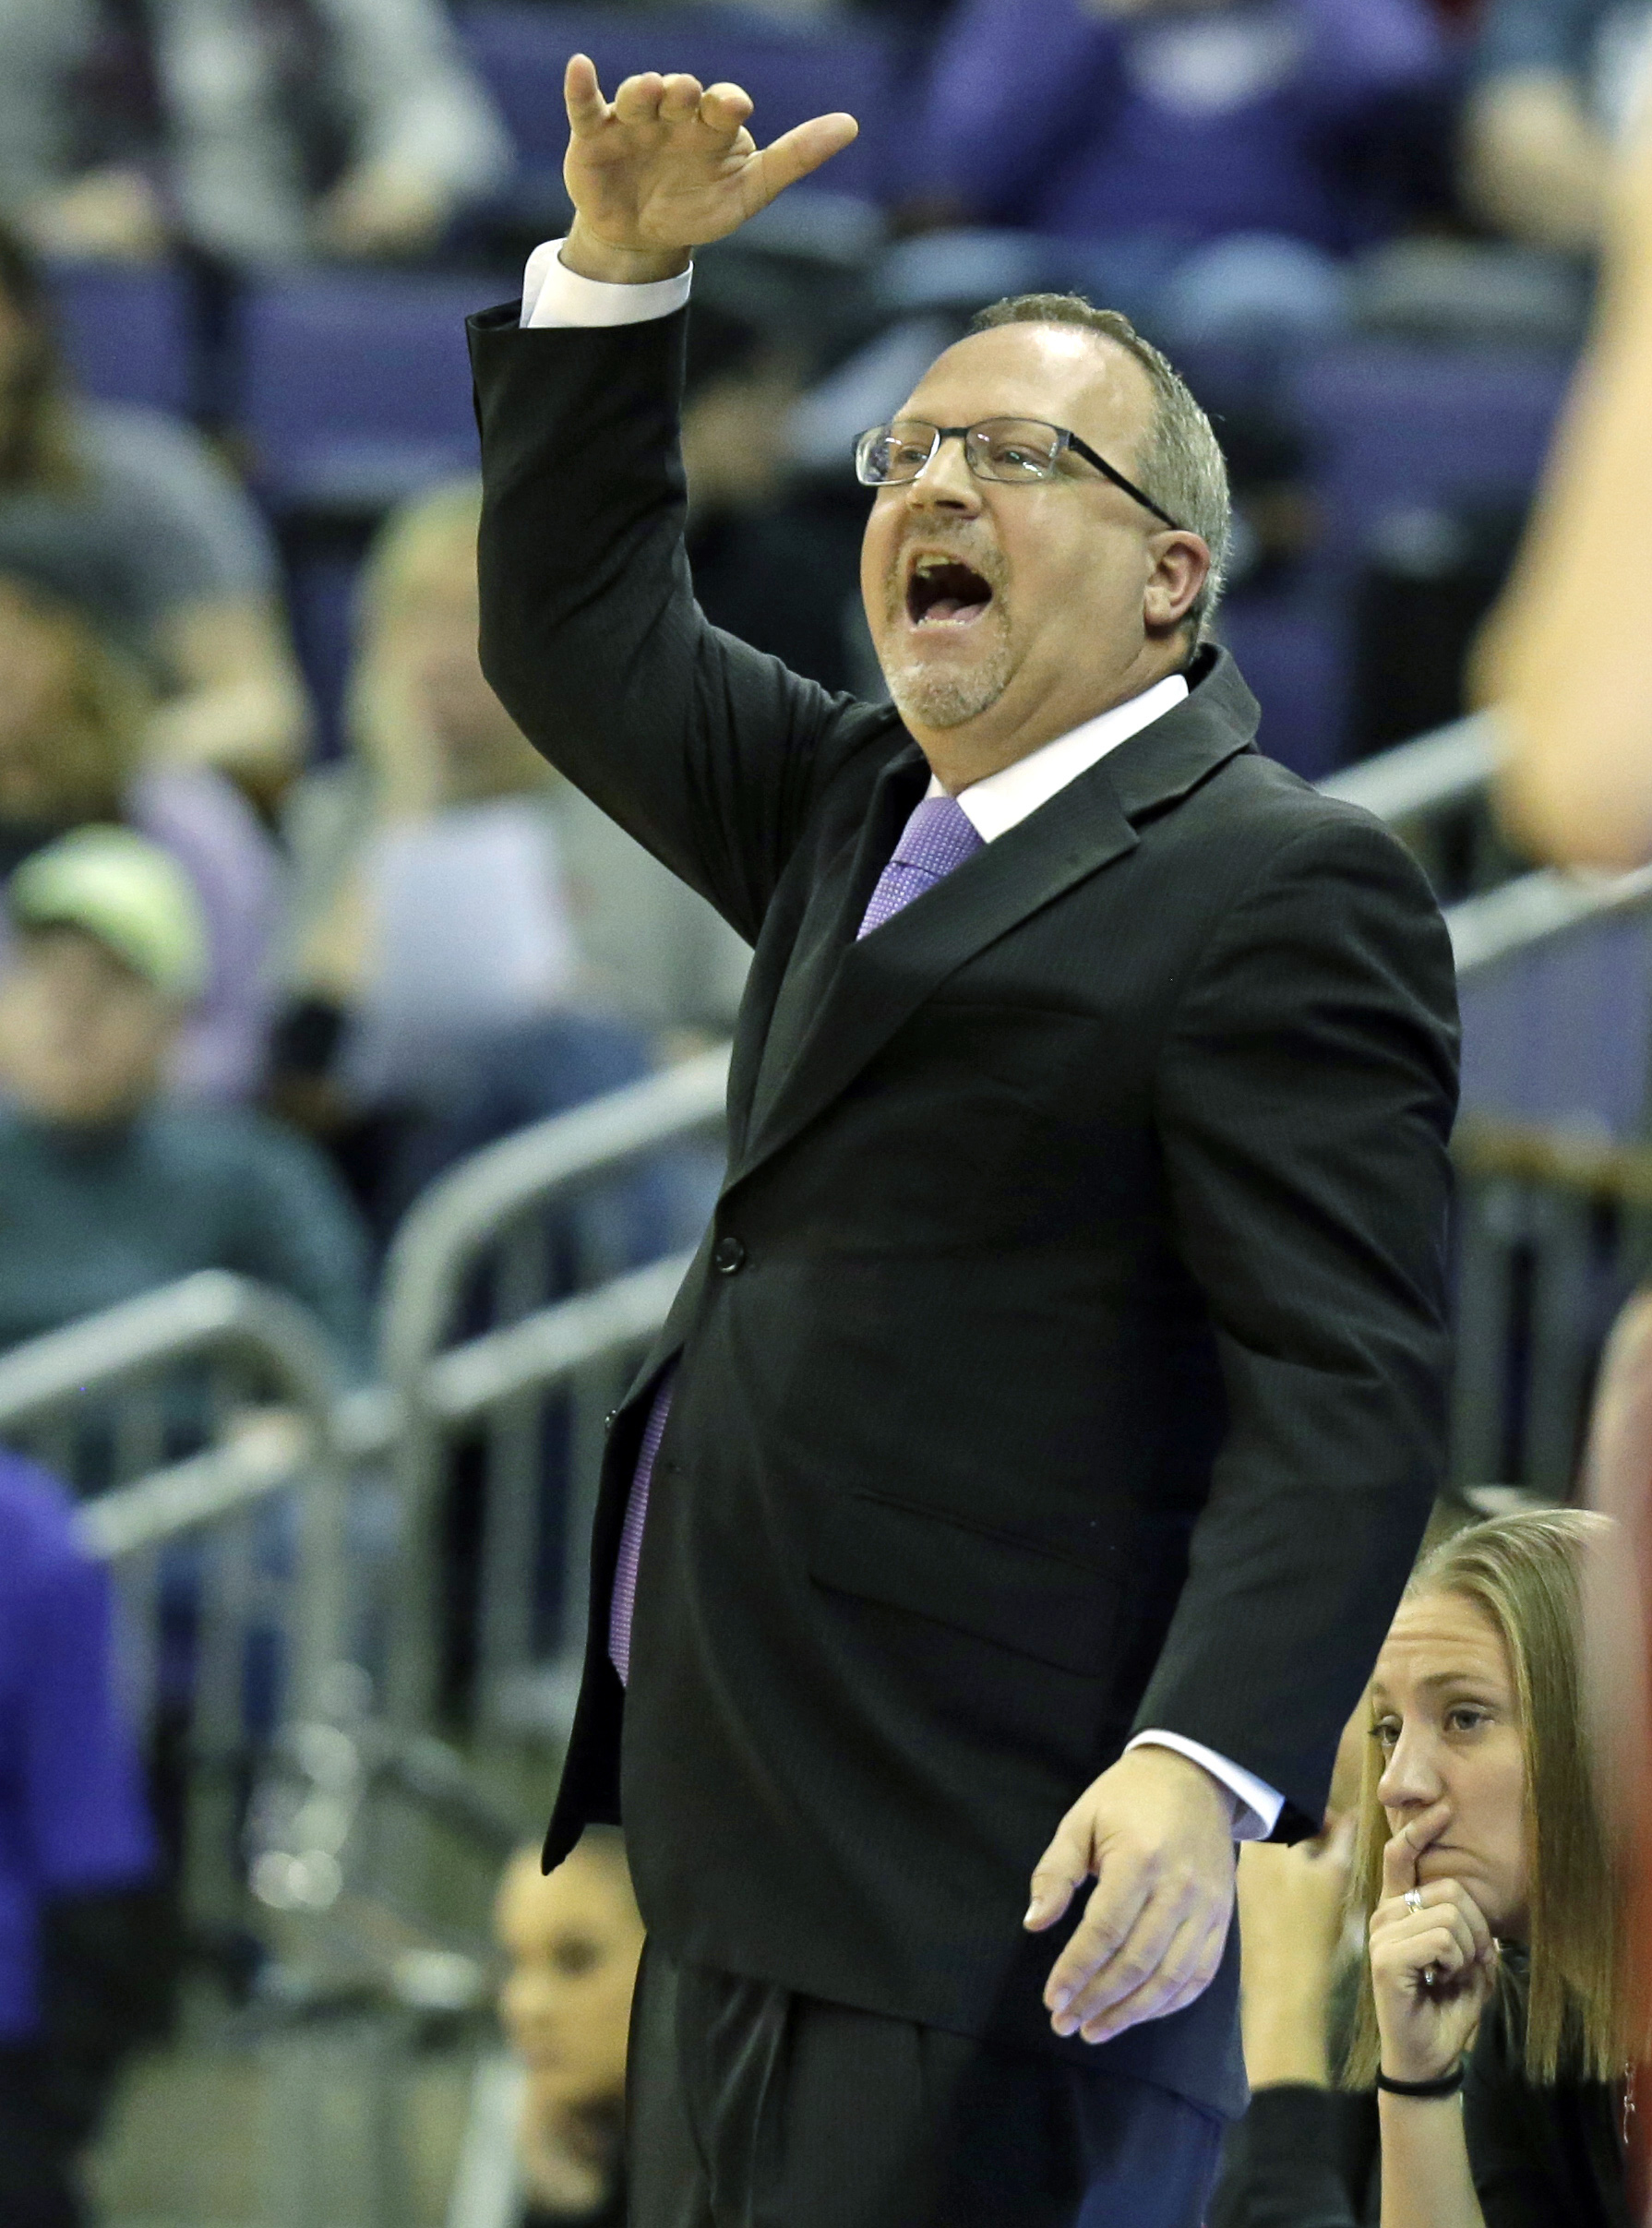 Washington head coach Mike Neighbors gestures from the bench during the second half of an NCAA college basketball game against Washington State, Saturday, Jan. 23, 2016, in Seattle. (AP Photo/Ted S. Warren)